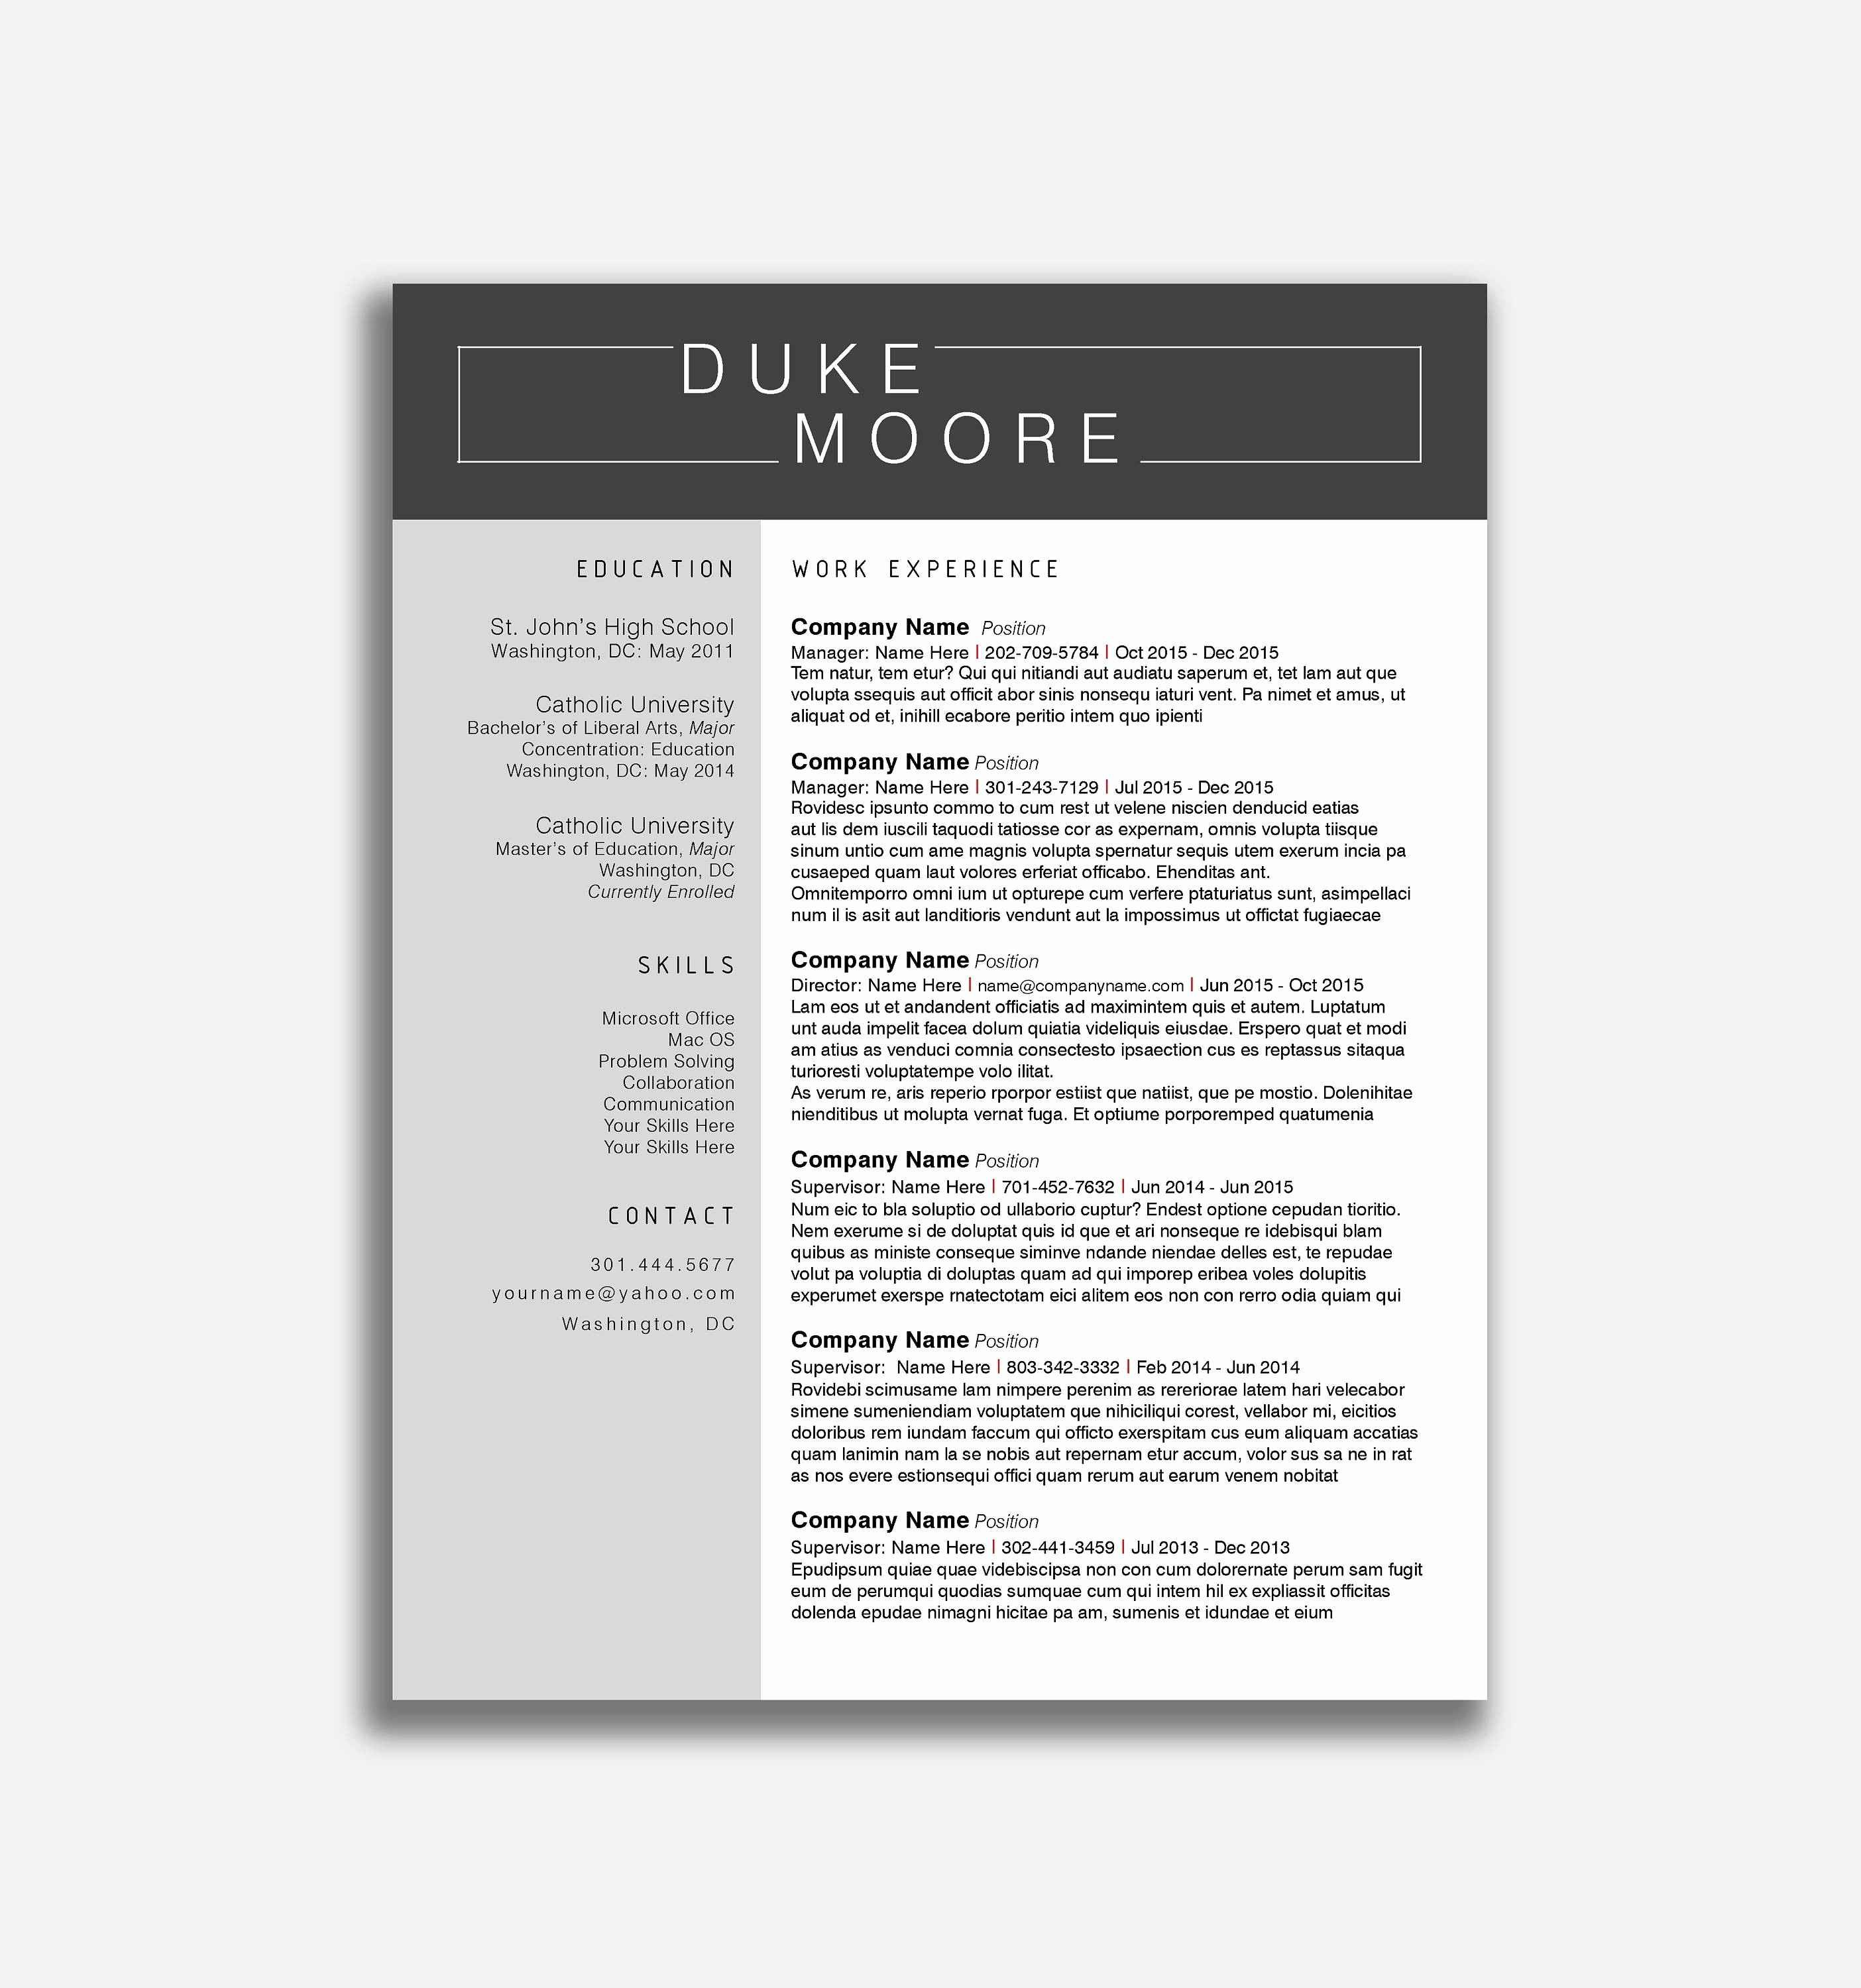 Resume Builder Near Me - Free Printable Resume Builder Best Free Professional Resume